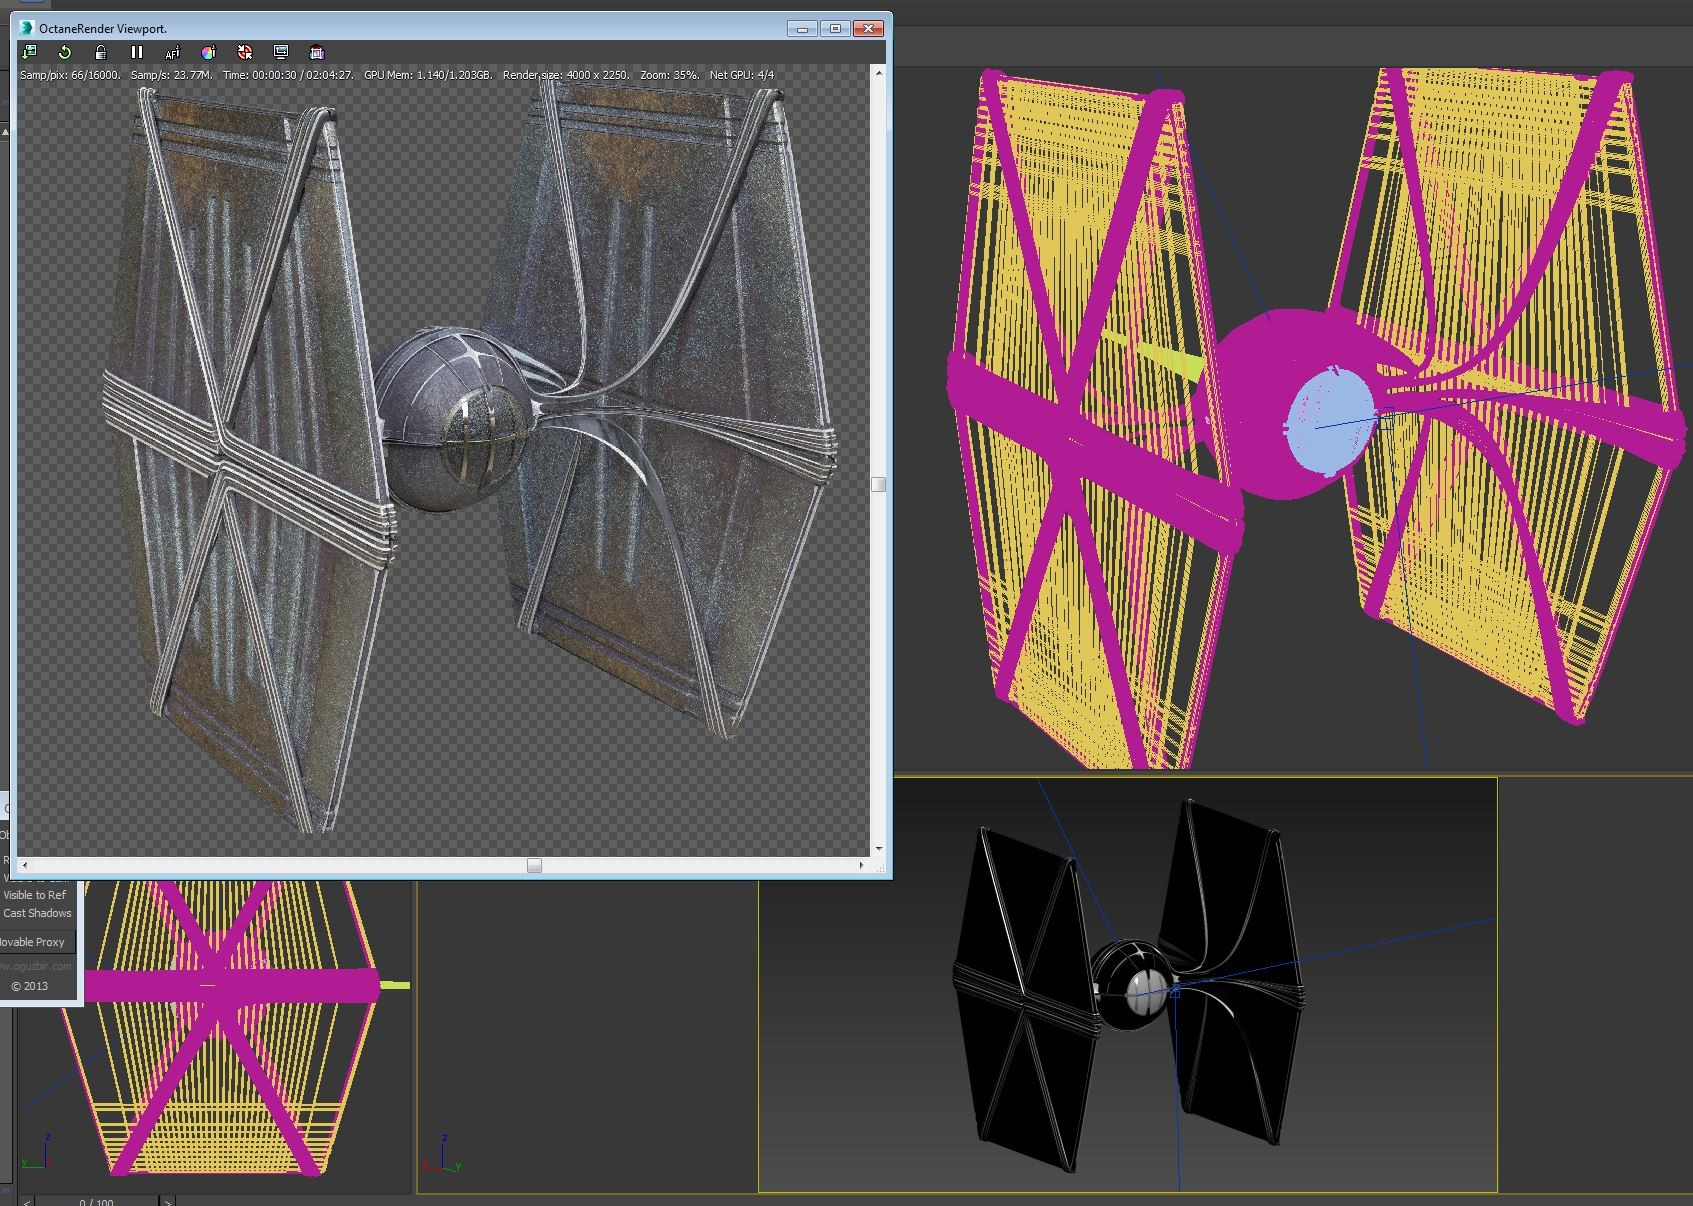 Kresimir jelusic 57 051215 tie fighter steam punk process1